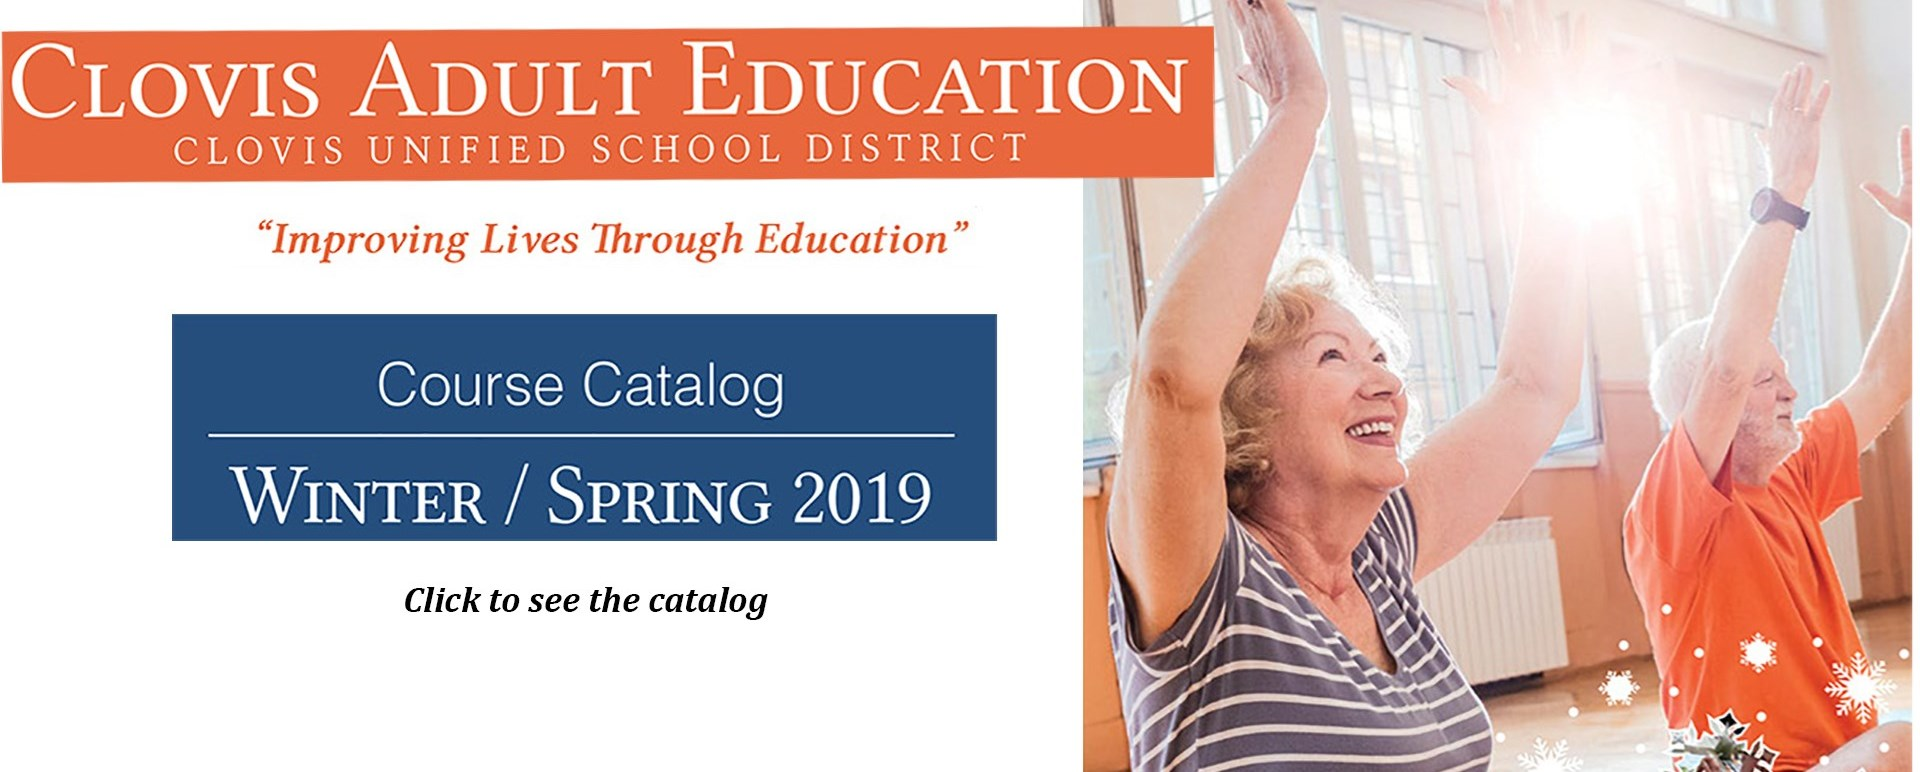 Clovis Adult Education Community Education 2019 Winter/Spring Catalog is here.  Click to view catalog